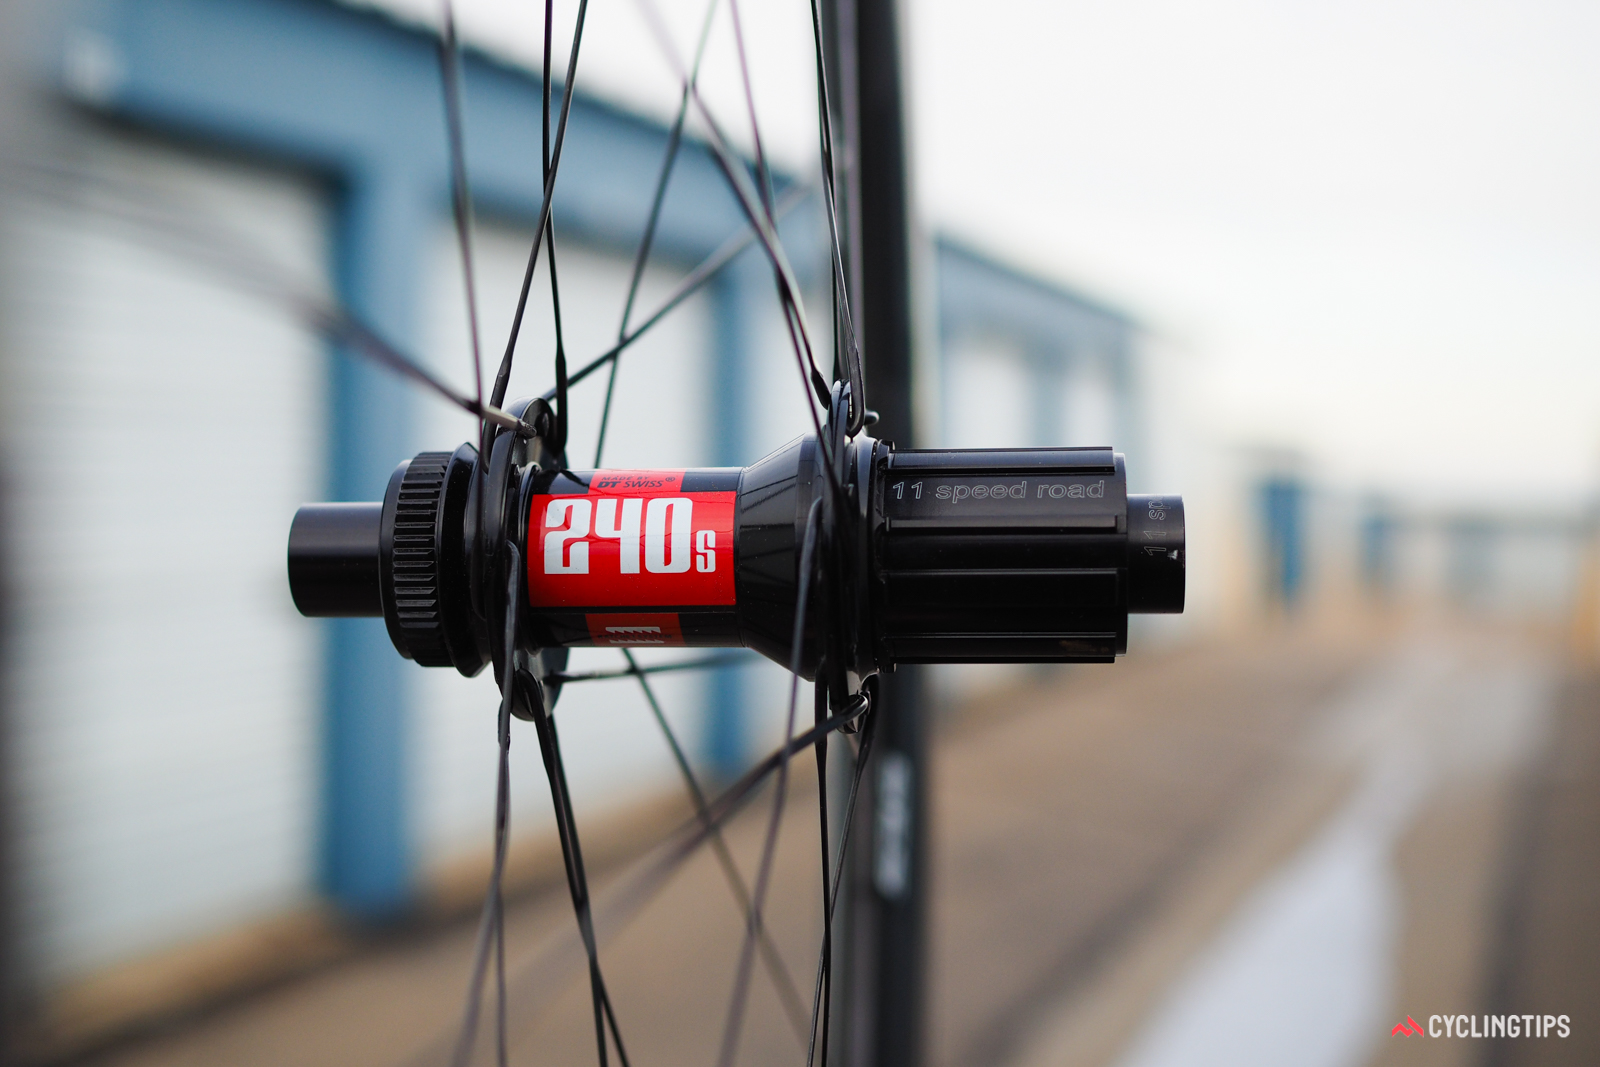 The standard DT Swiss 240s rear hub comes stock with 18-tooth ratchet rings, which produce a languid 20-degree freehub engagement speed. Improving that figure requires either upgrading the ratchet rings yourself or choosing the Chris King R45 hub option, both of which cost more money.